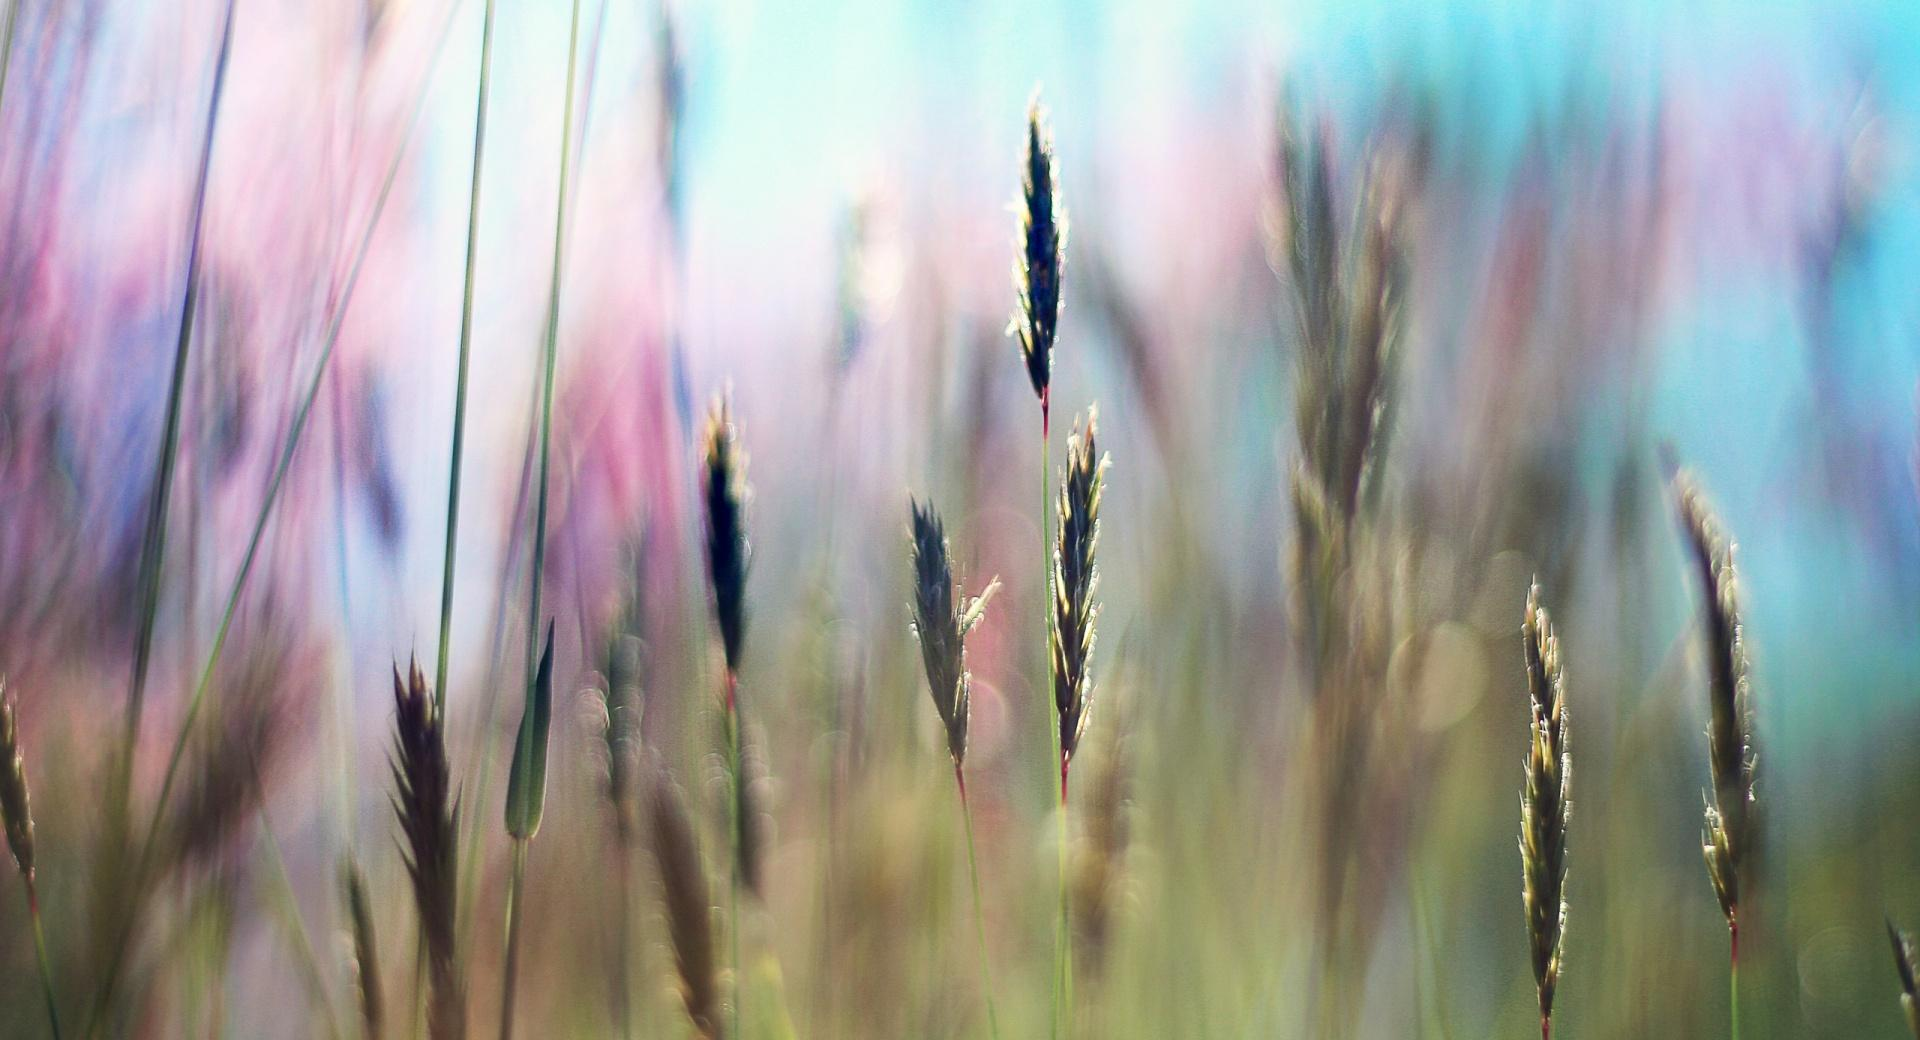 Field Grass wallpapers HD quality